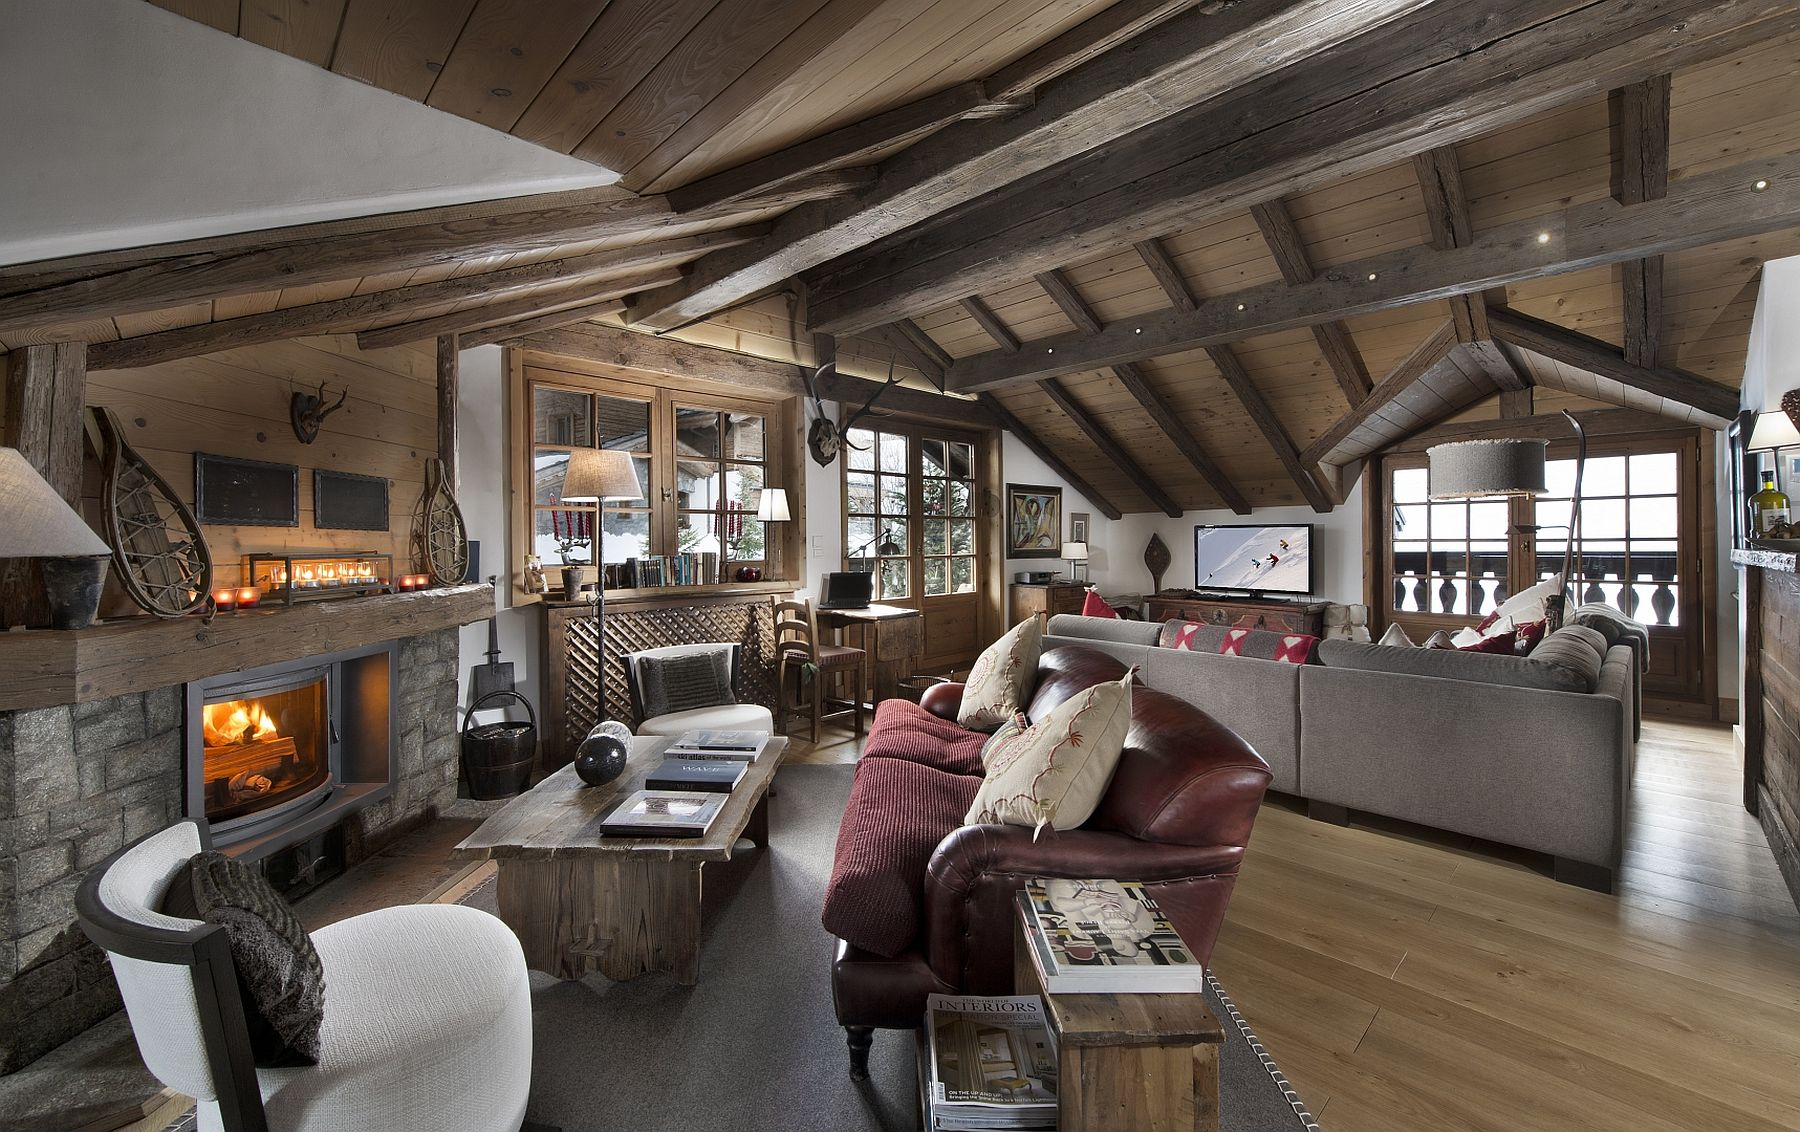 Living room of Chalet Le Namaste with a cozy fireplace